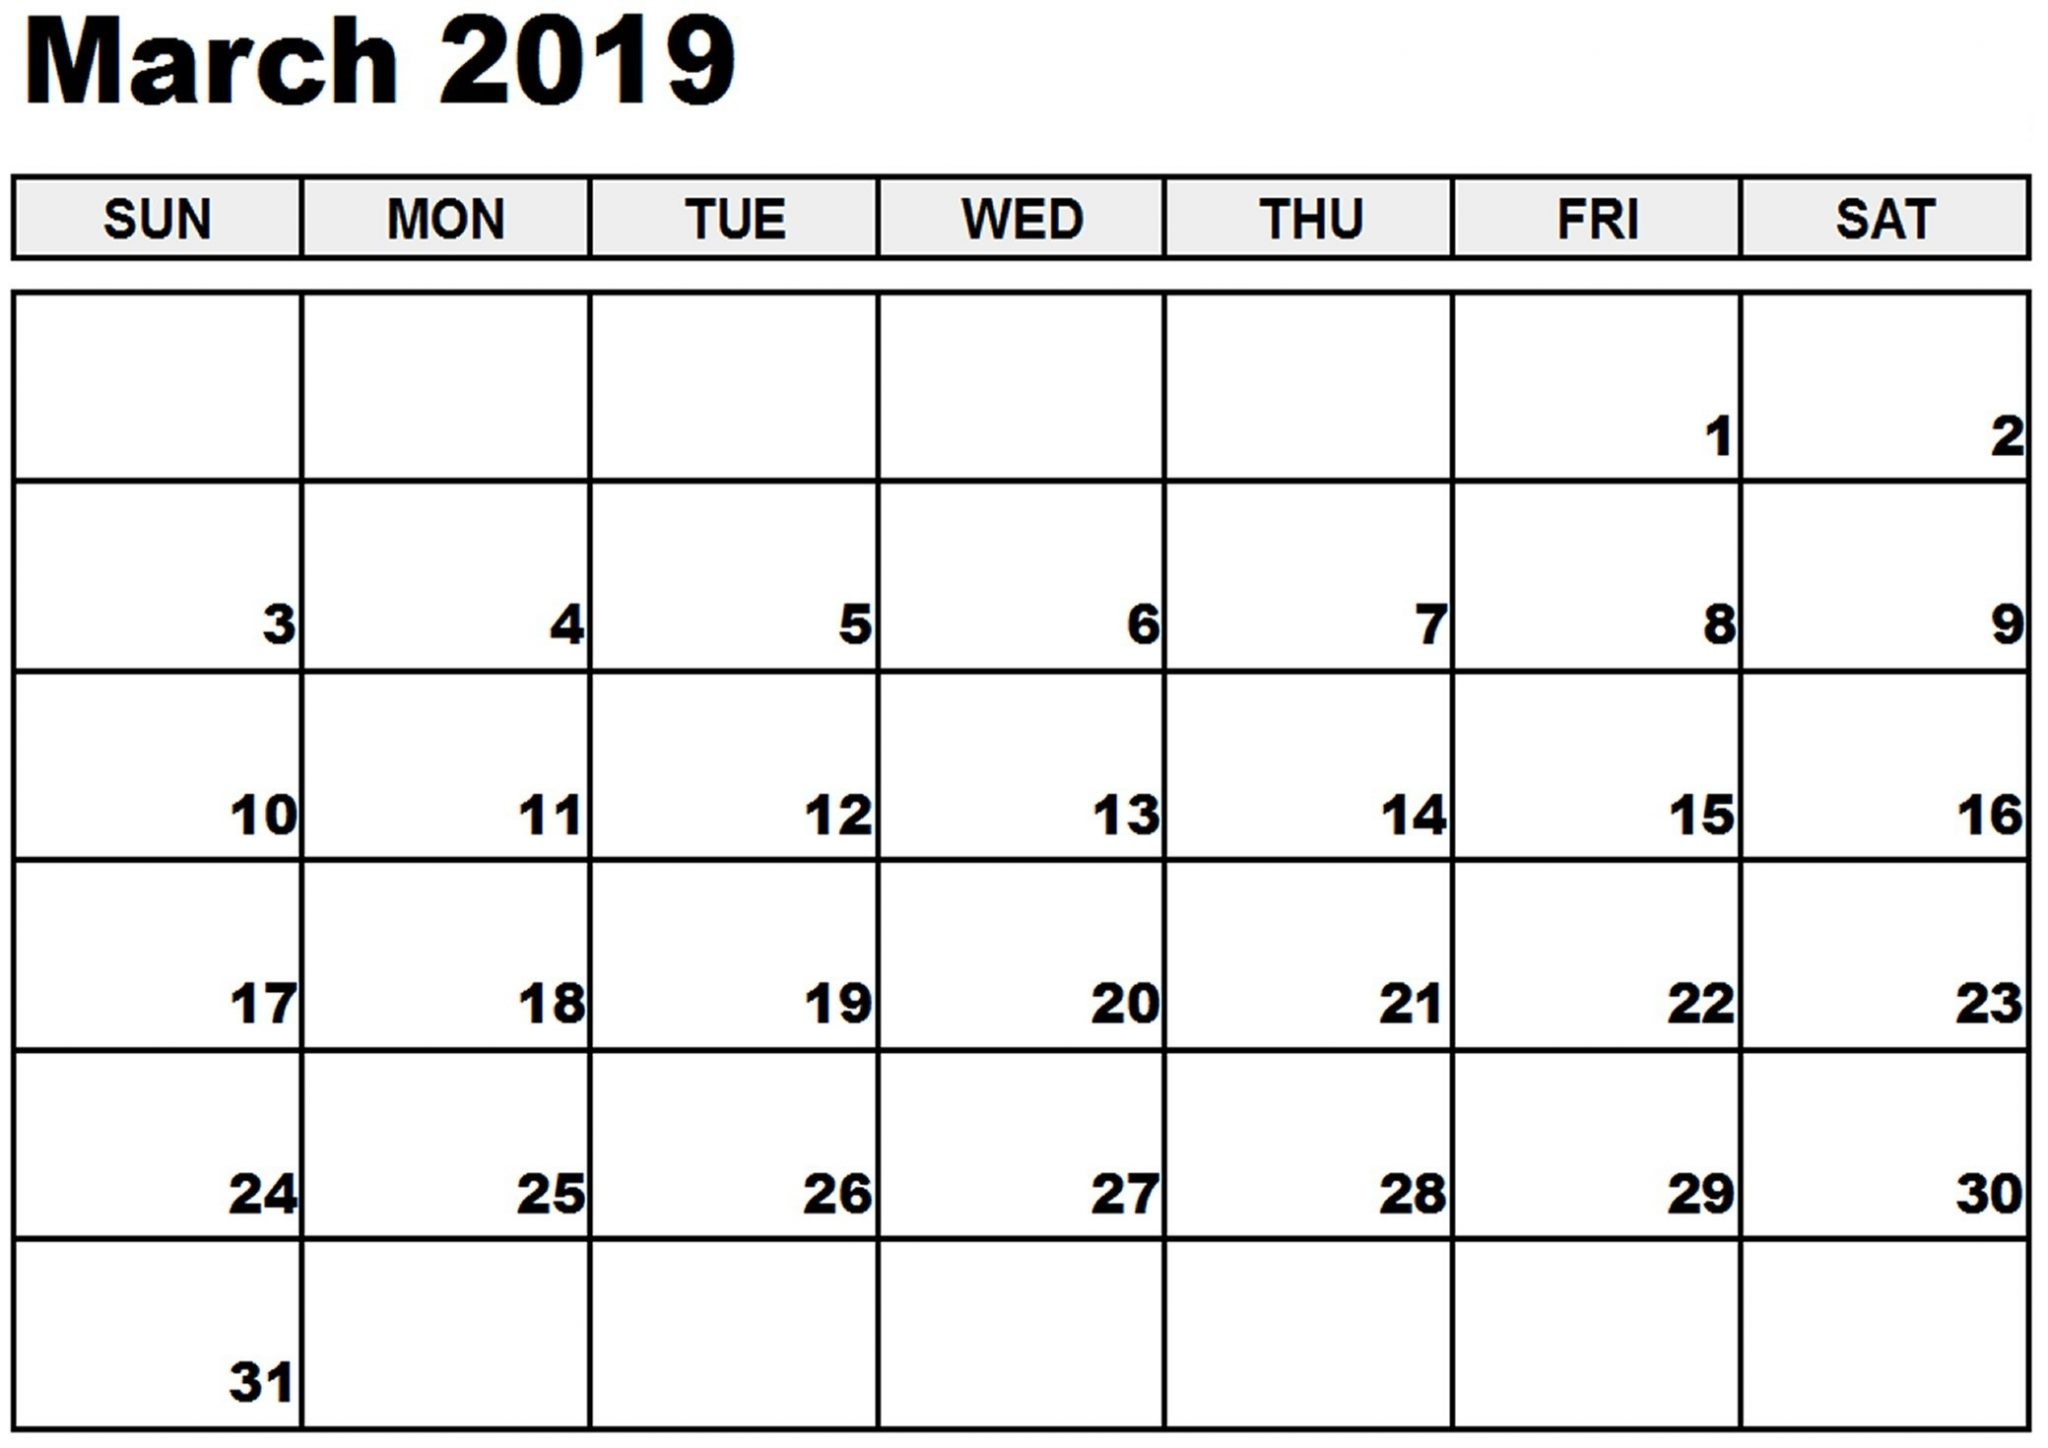 March 2019 Calendar Landscape Printable